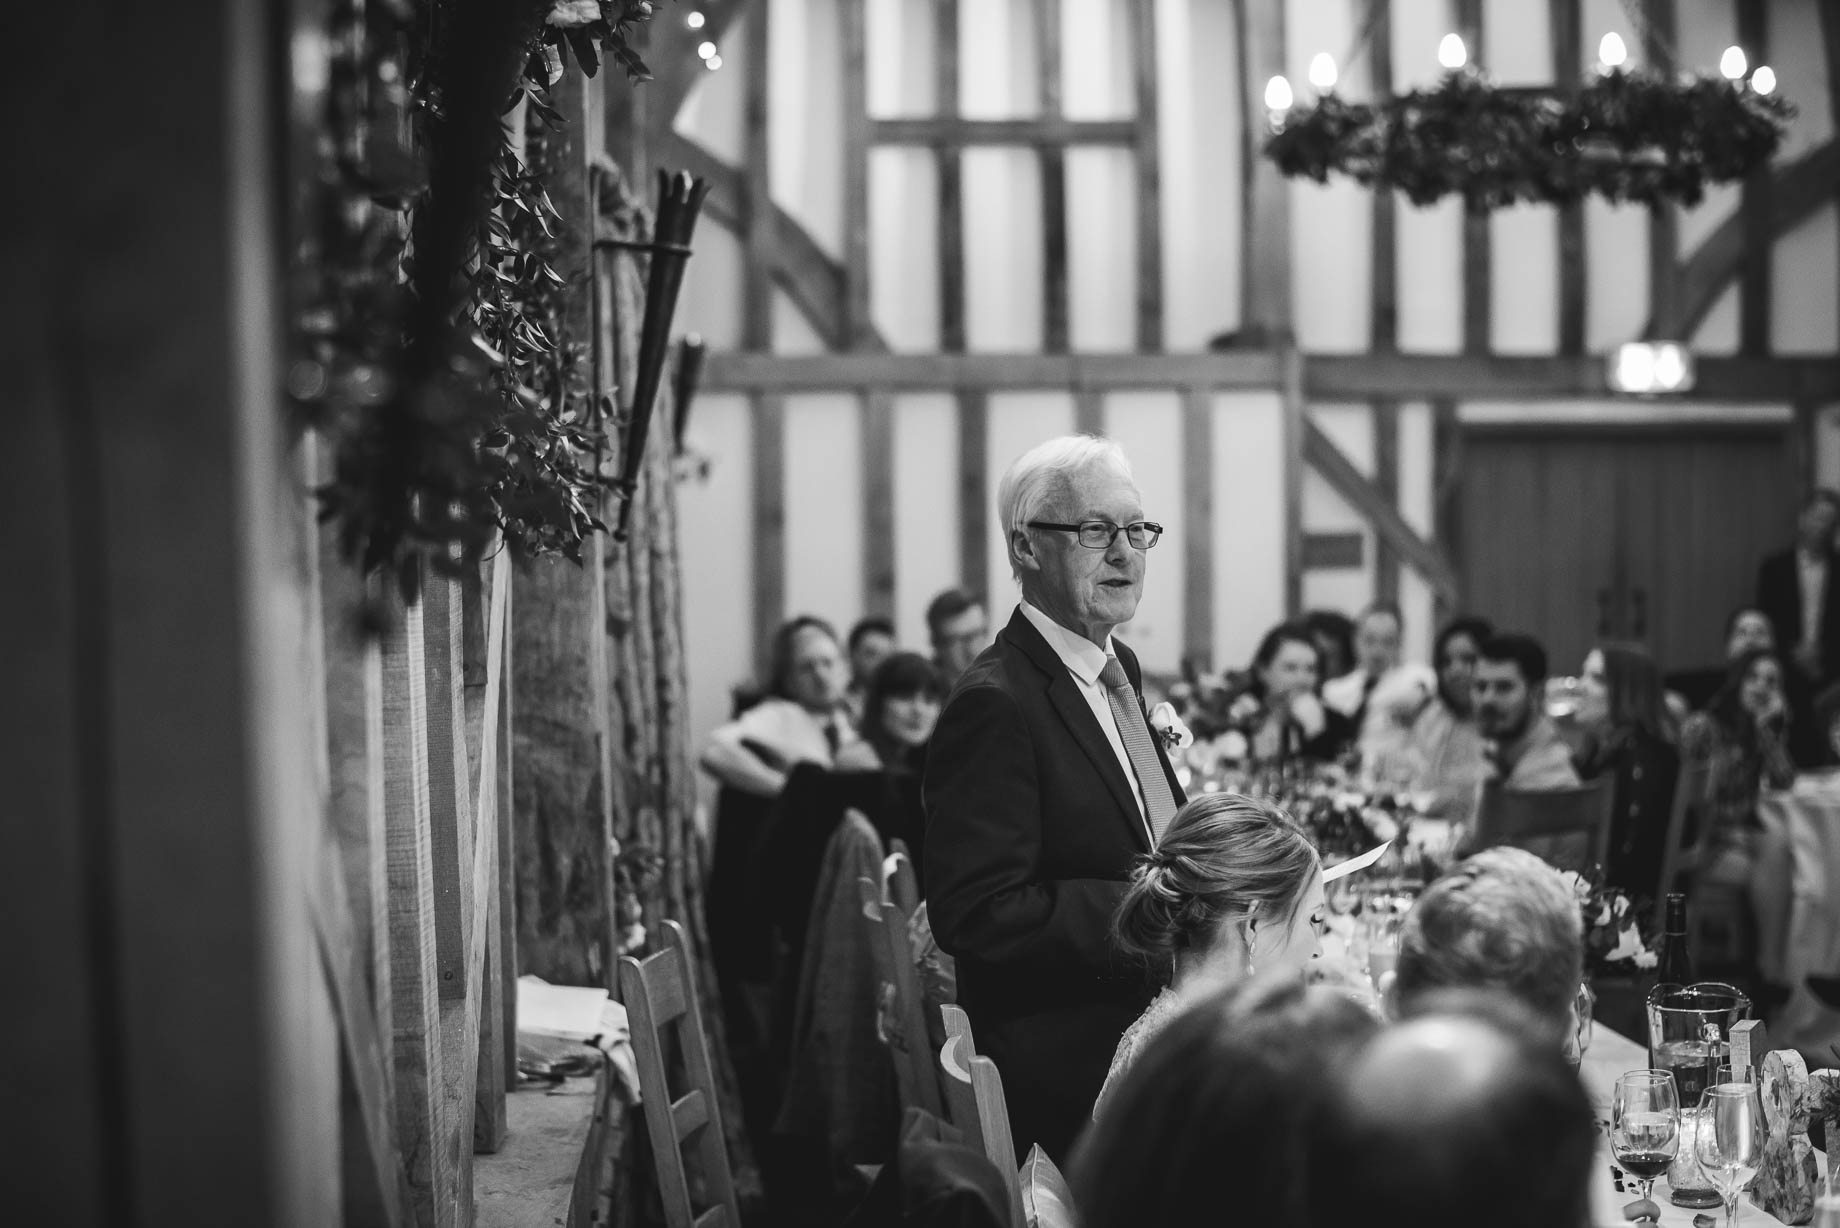 Surrey Wedding Photography by Guy Collier - Becca and James (123 of 145)